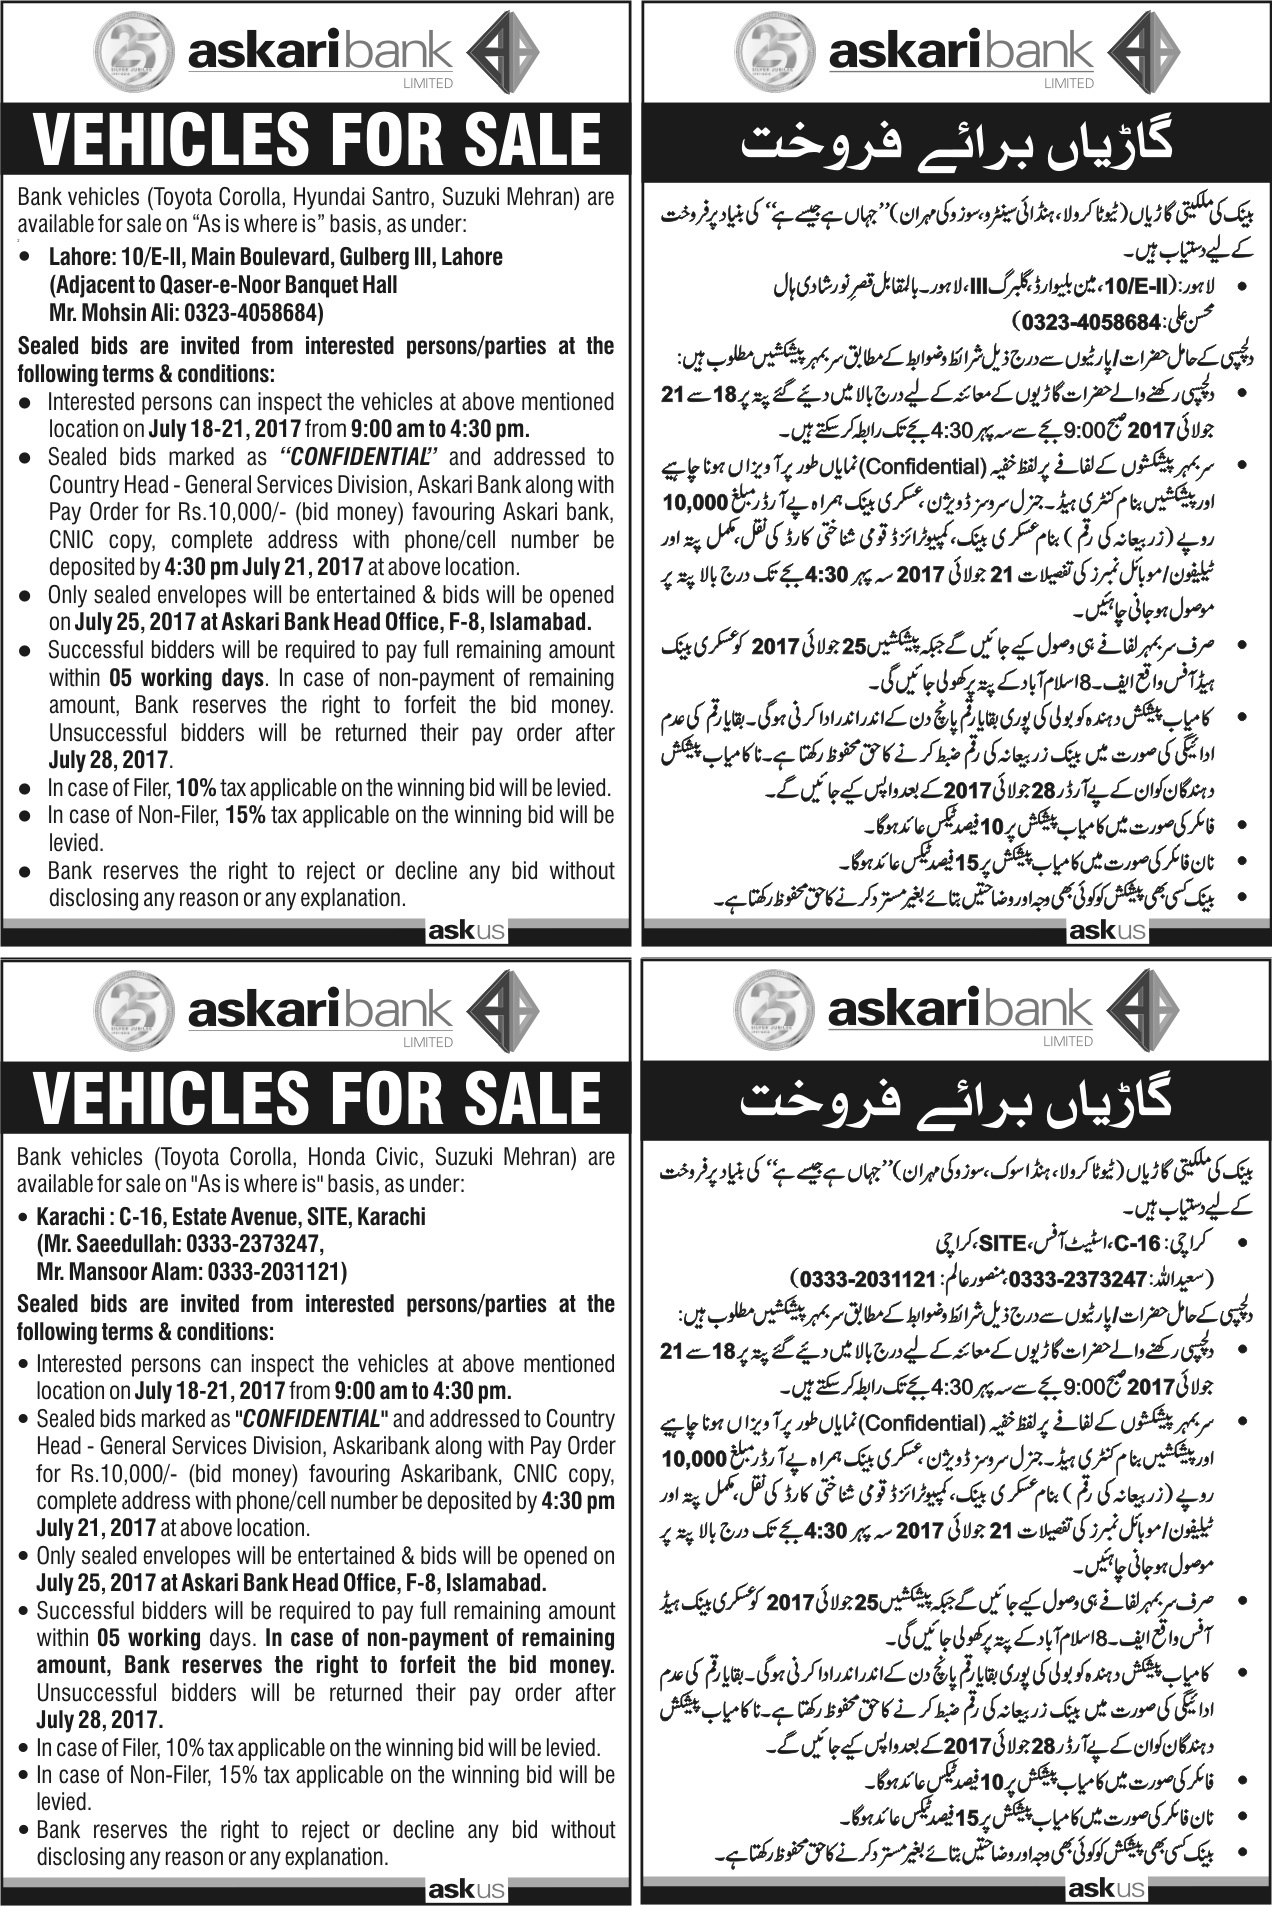 The Official Website Of Askari Bank Limited Pakistan Vehicles For Auction 2017 Lahore Karachi